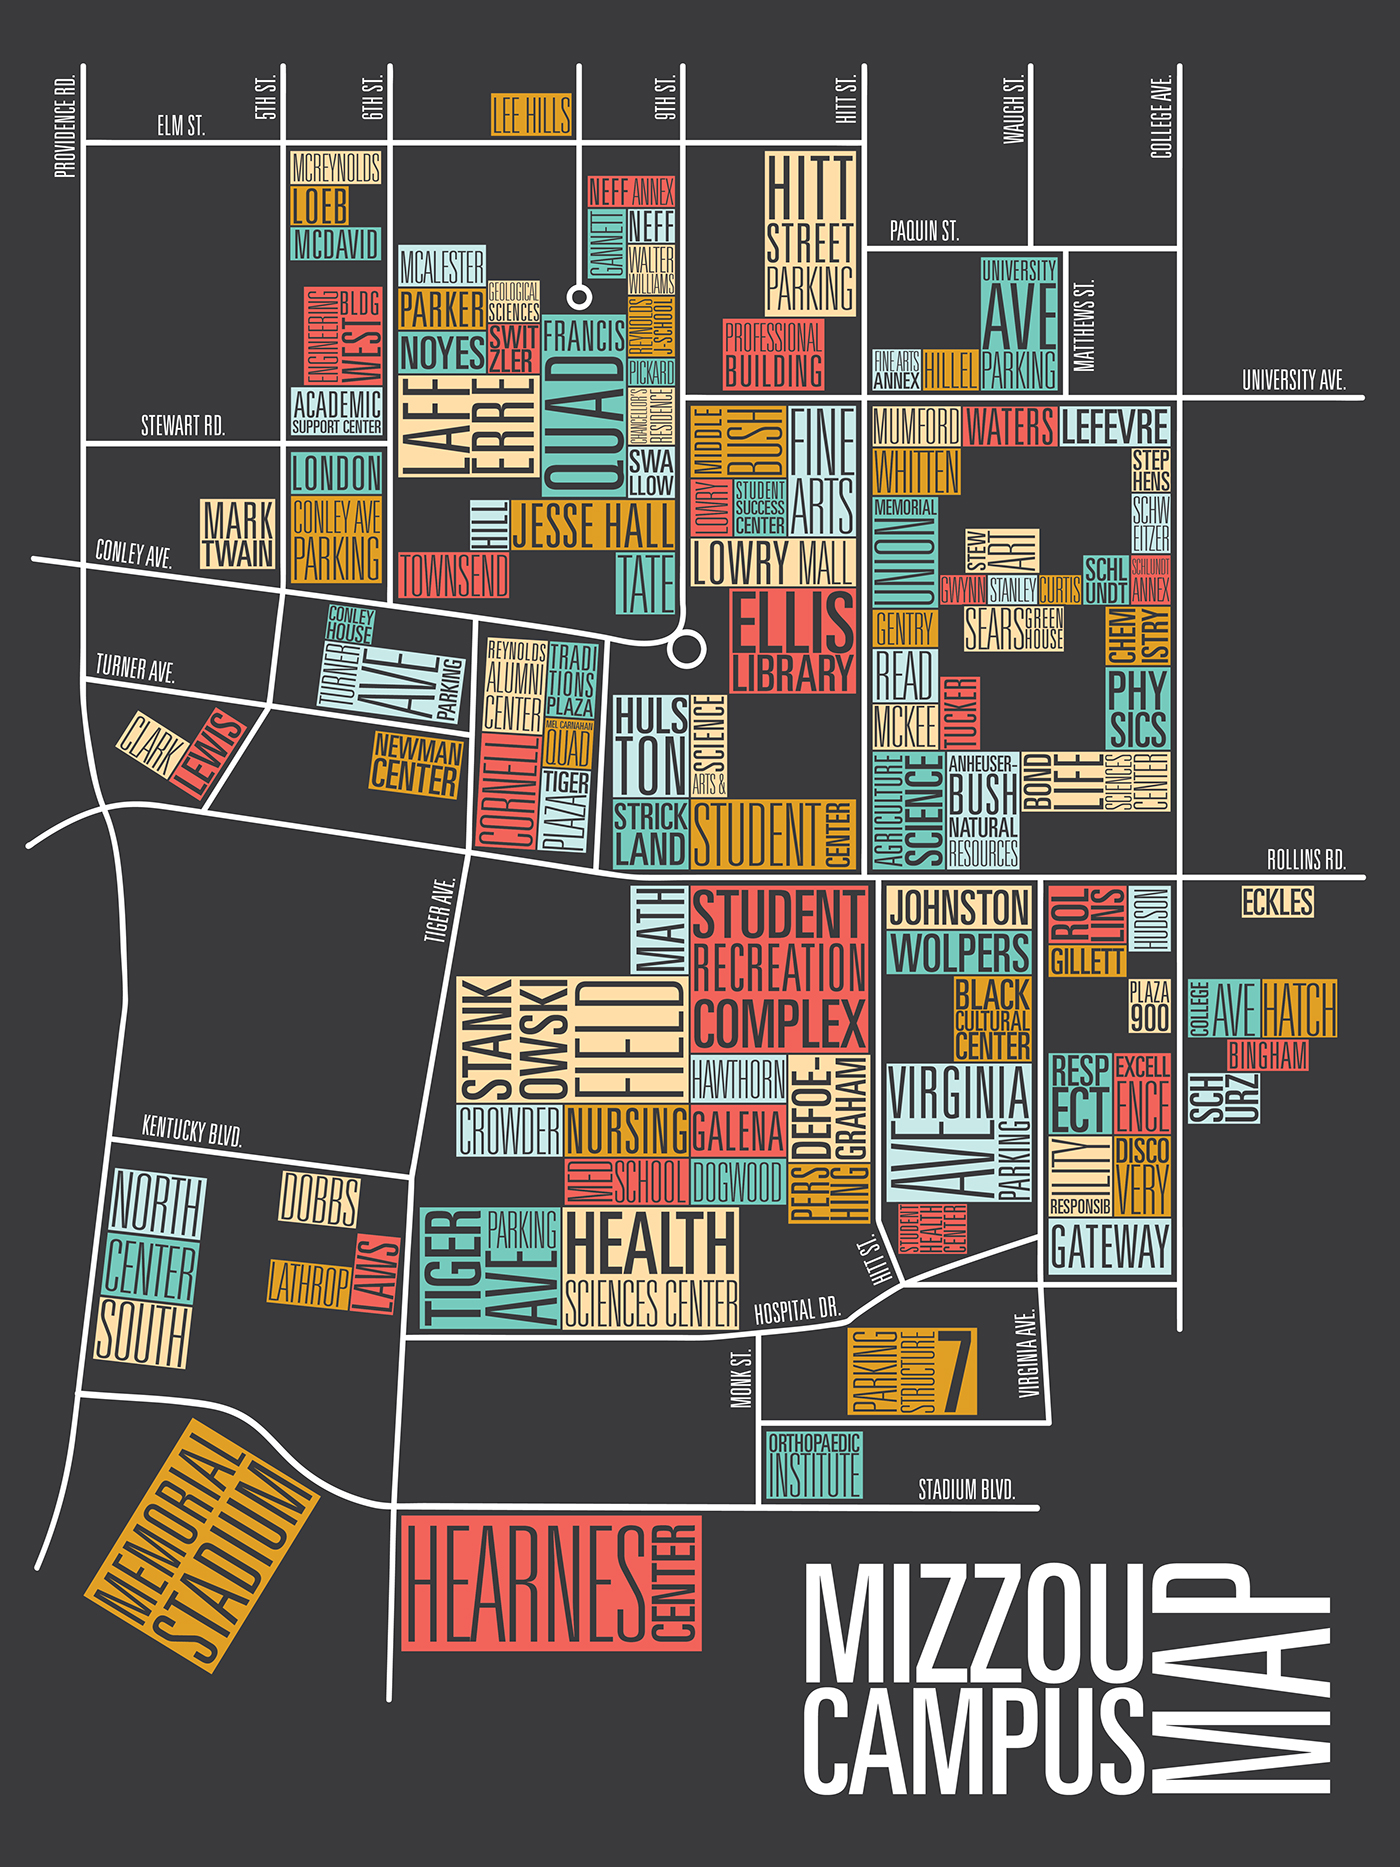 mizzou campus map on behance